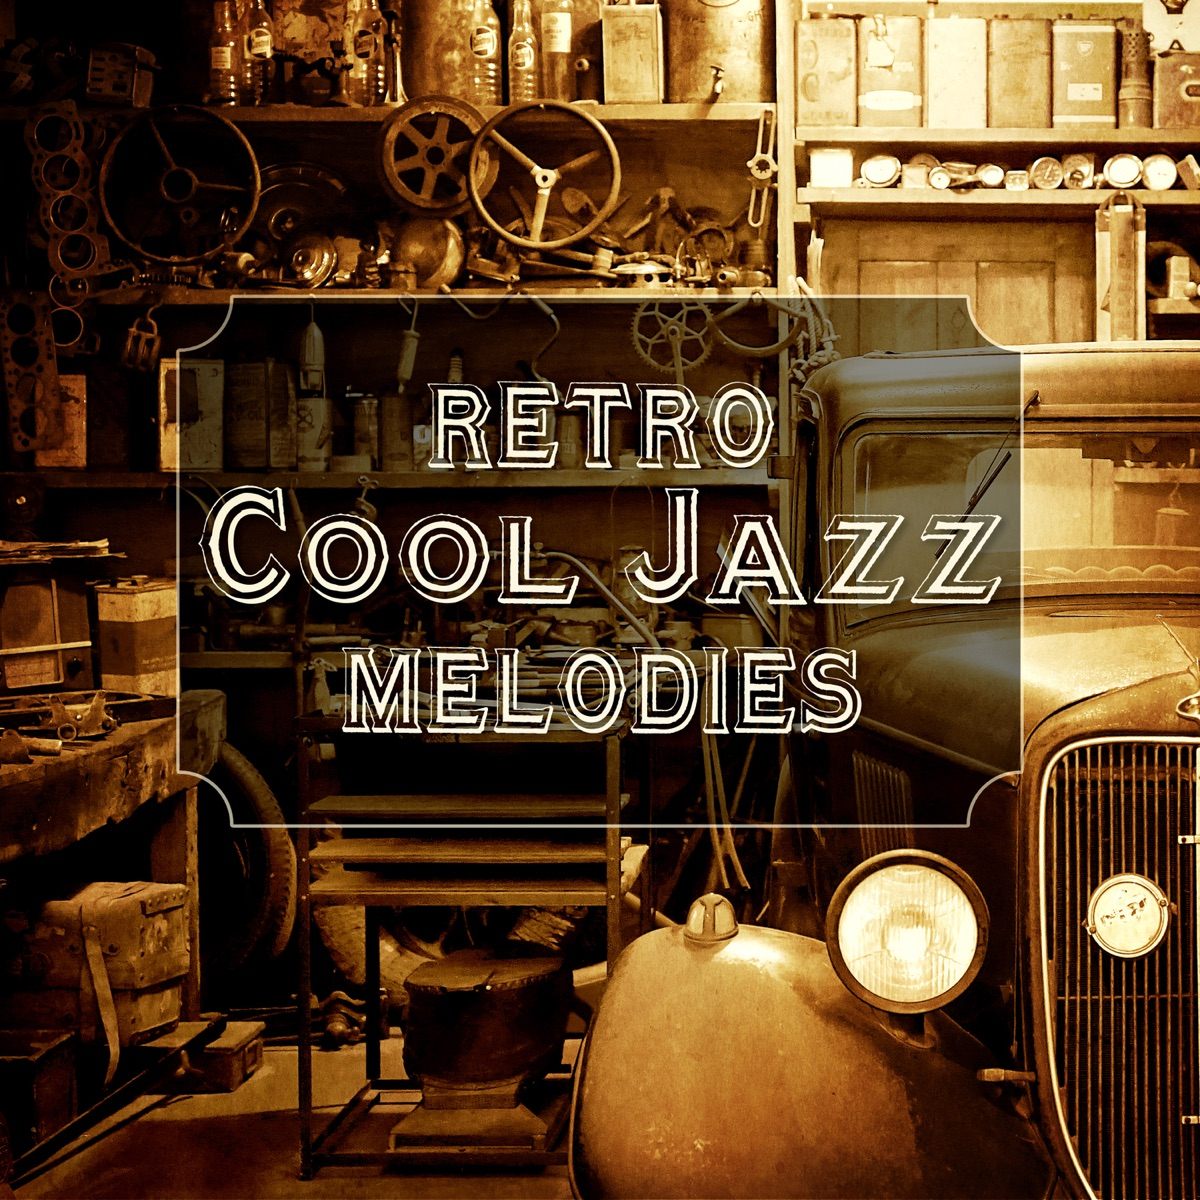 Retro Cool Jazz Melodies: Smooth & Relaxing Jazz Music